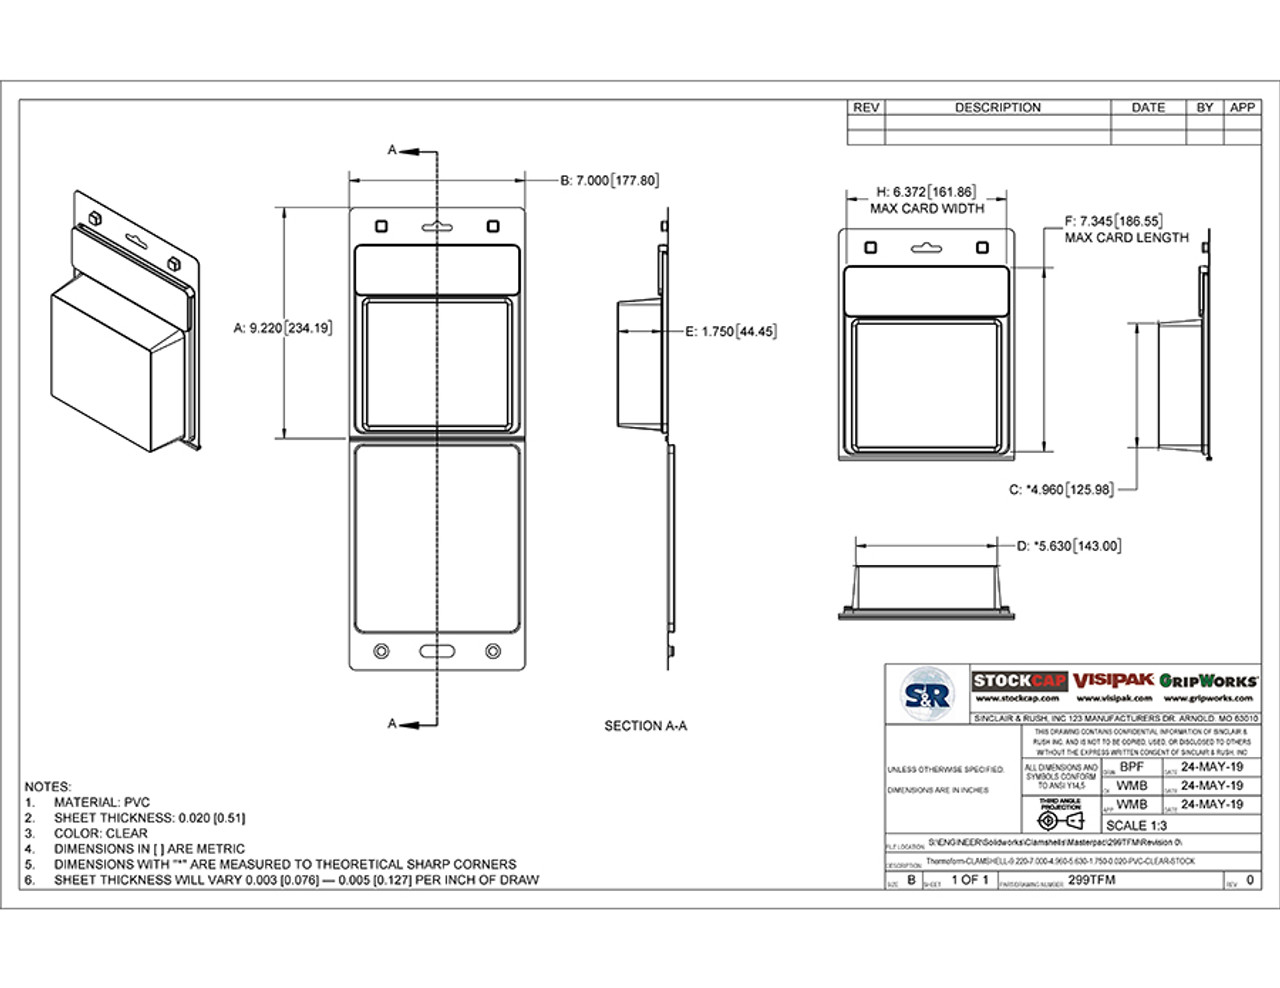 299TFM - Stock Clamshell Packaging Technical Drawing